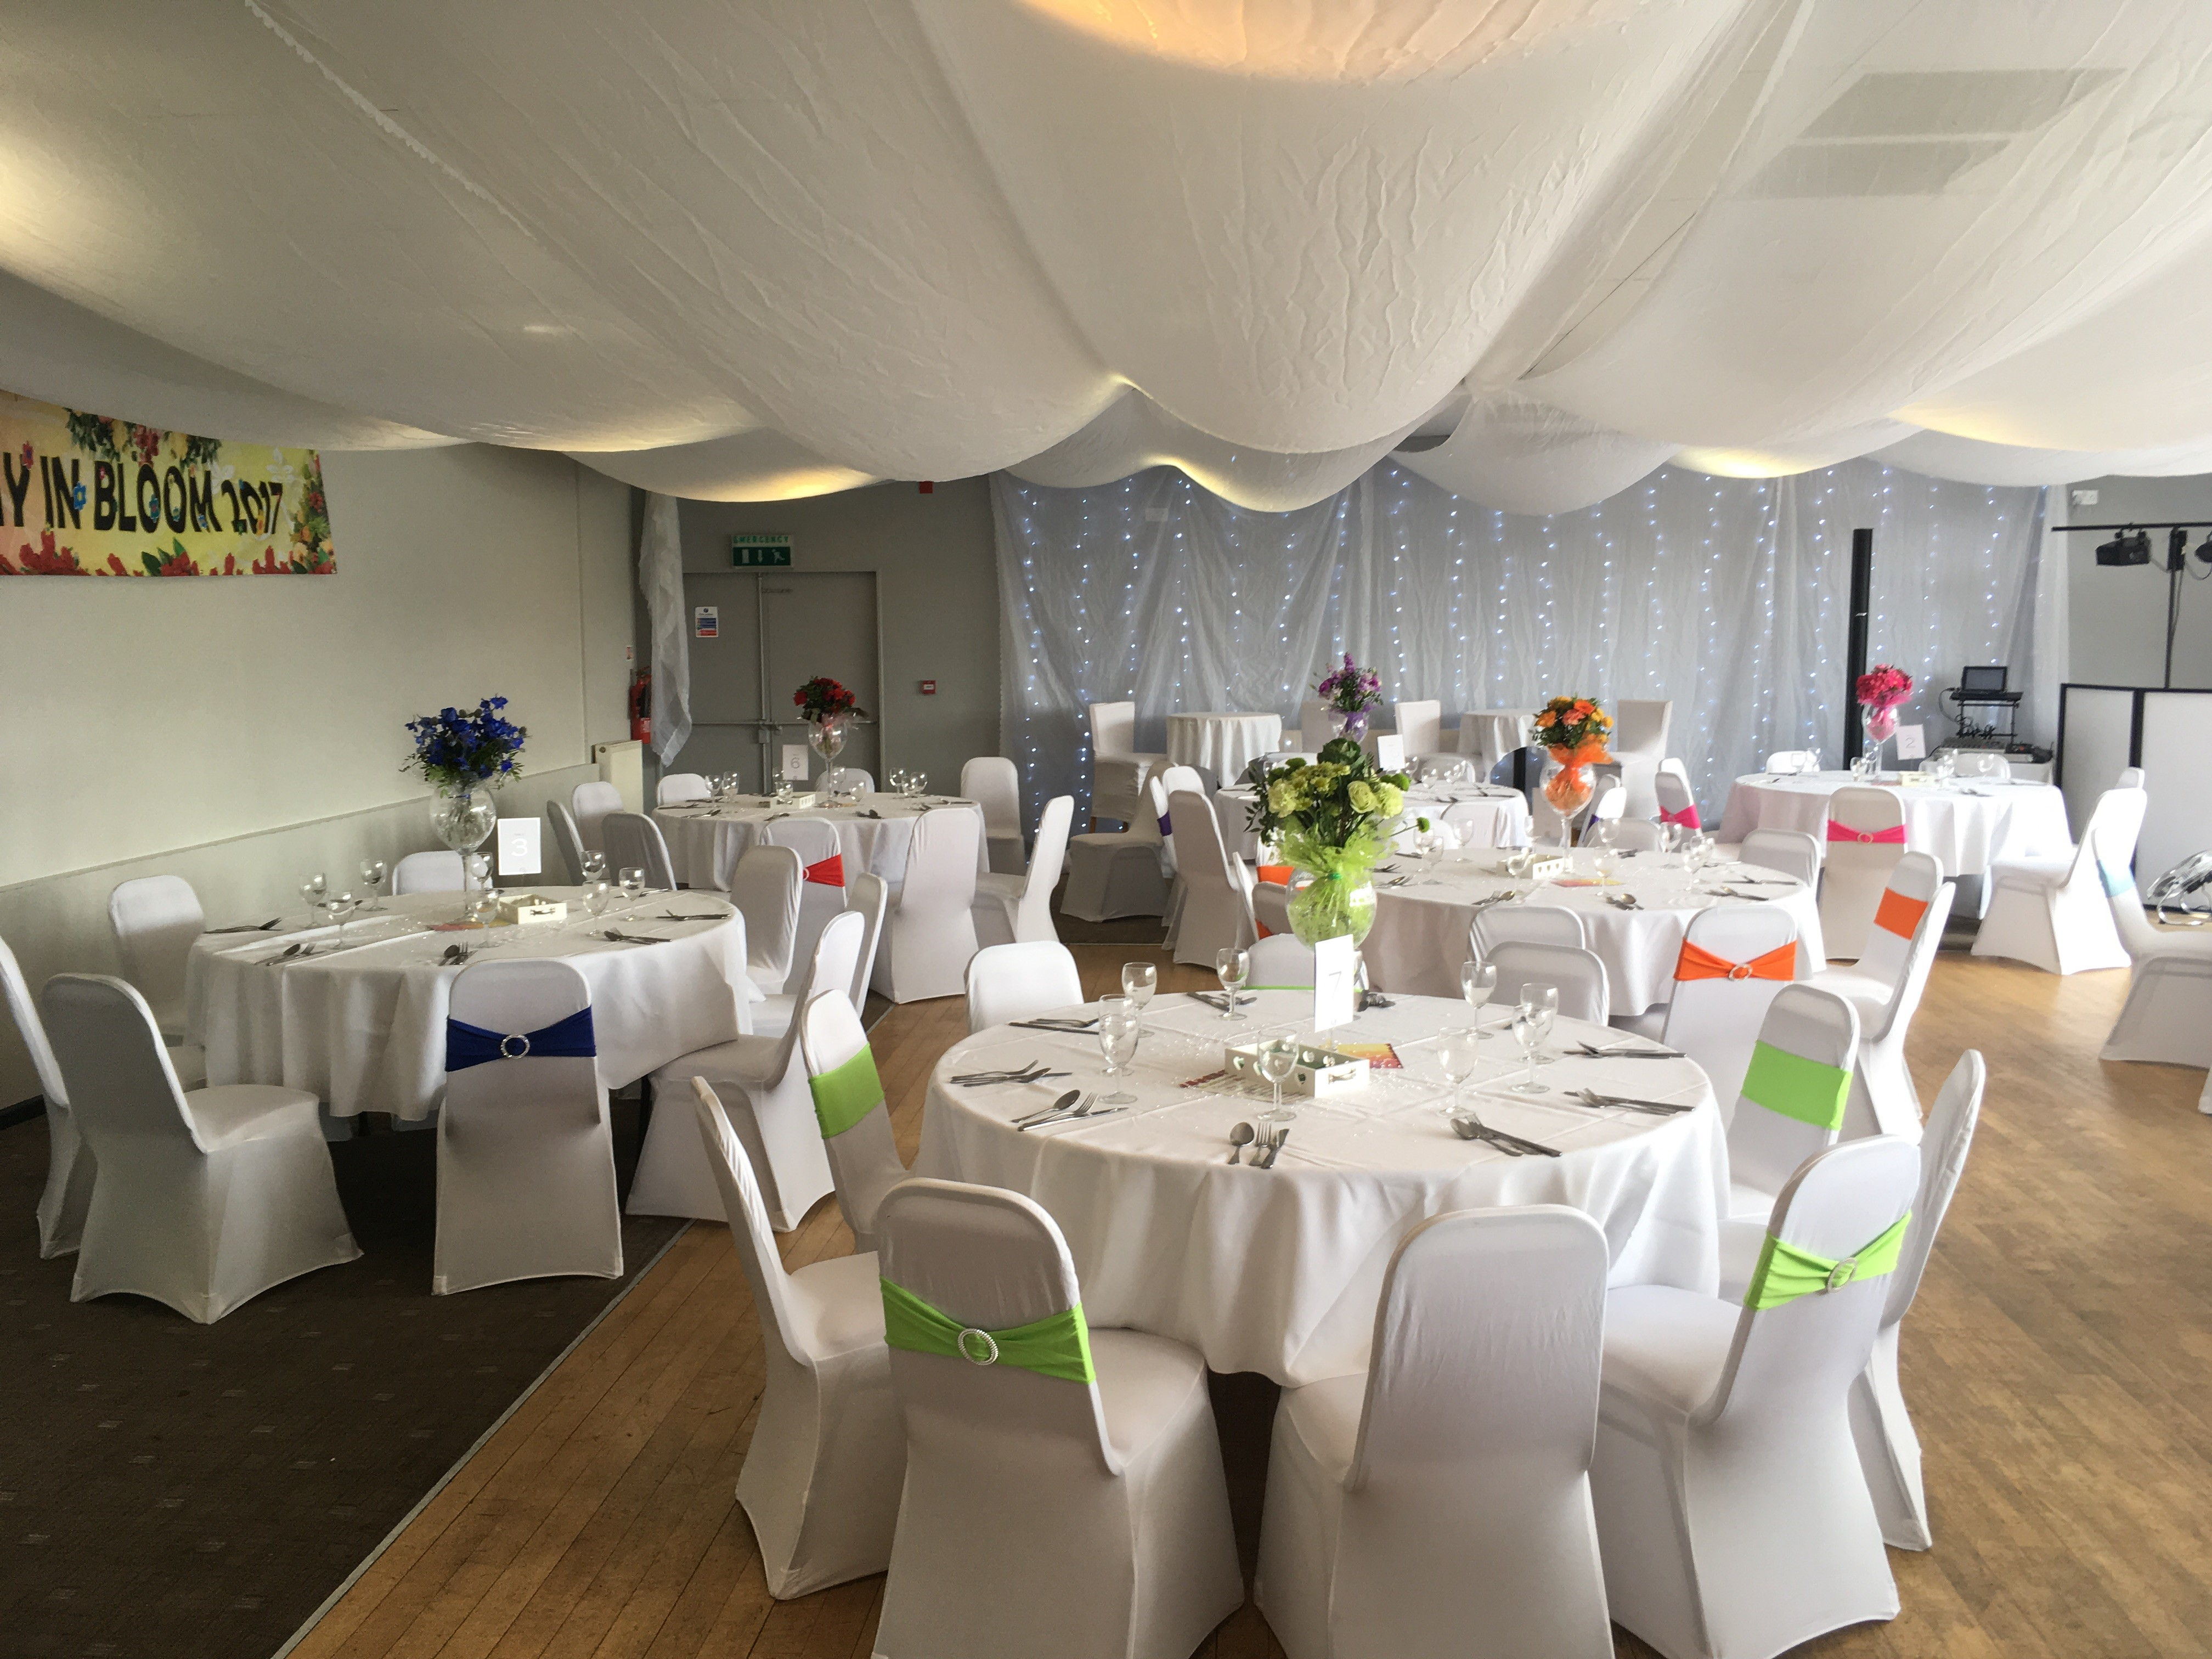 image of willow room at ladies day 2017 decorated in the theme of 'flowers in bloom'